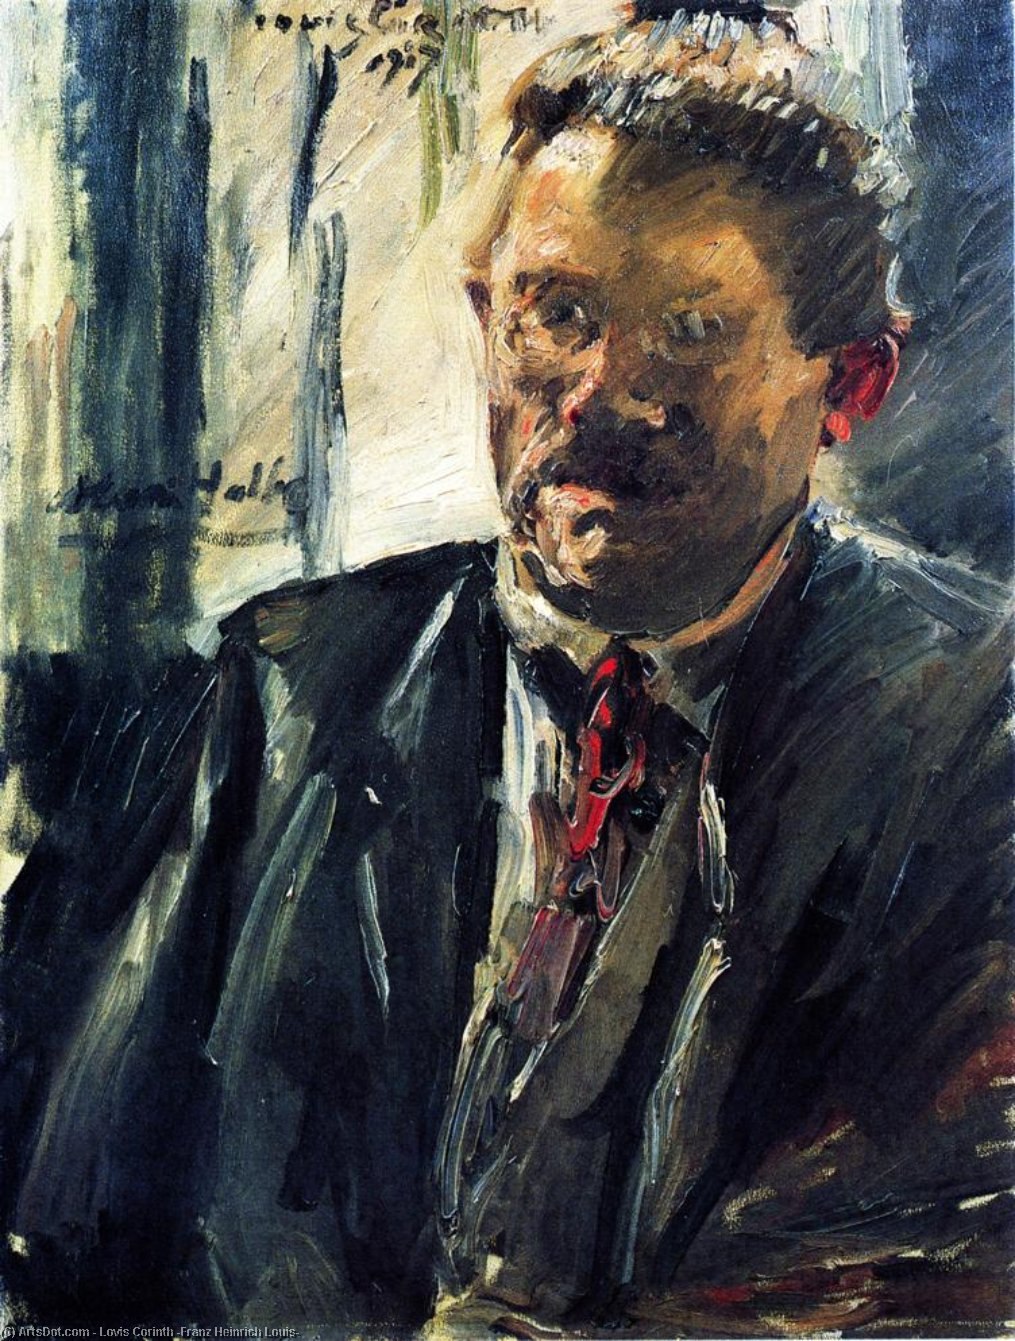 Portrait of Max Halbe, Oil On Canvas by Lovis Corinth (Franz Heinrich Louis) (1858-1925, Netherlands)